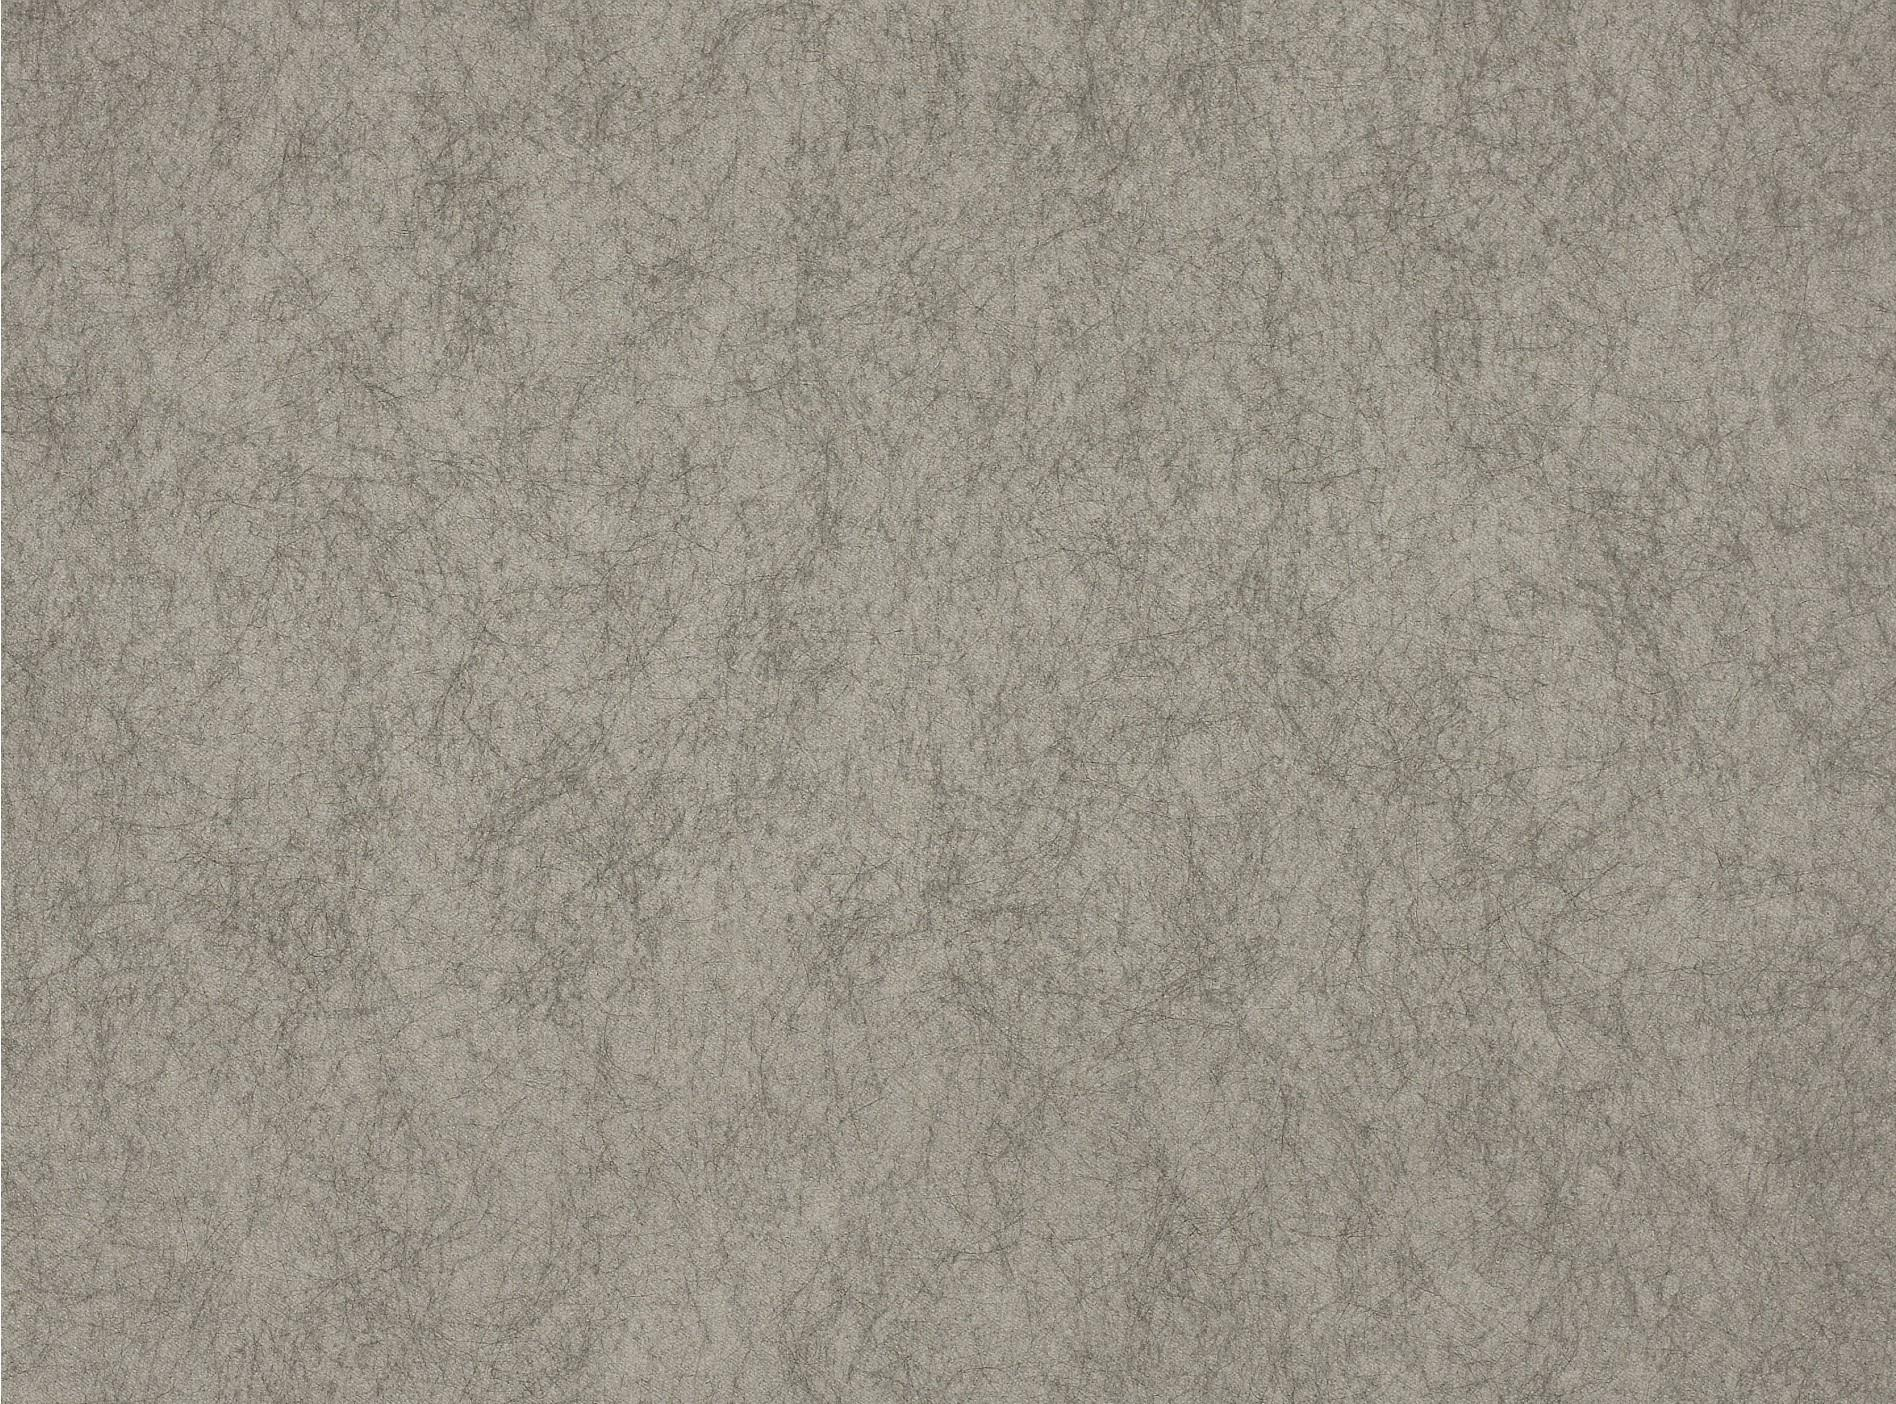 Romo Folia Wallpaper Romo Folia Collection Kiri